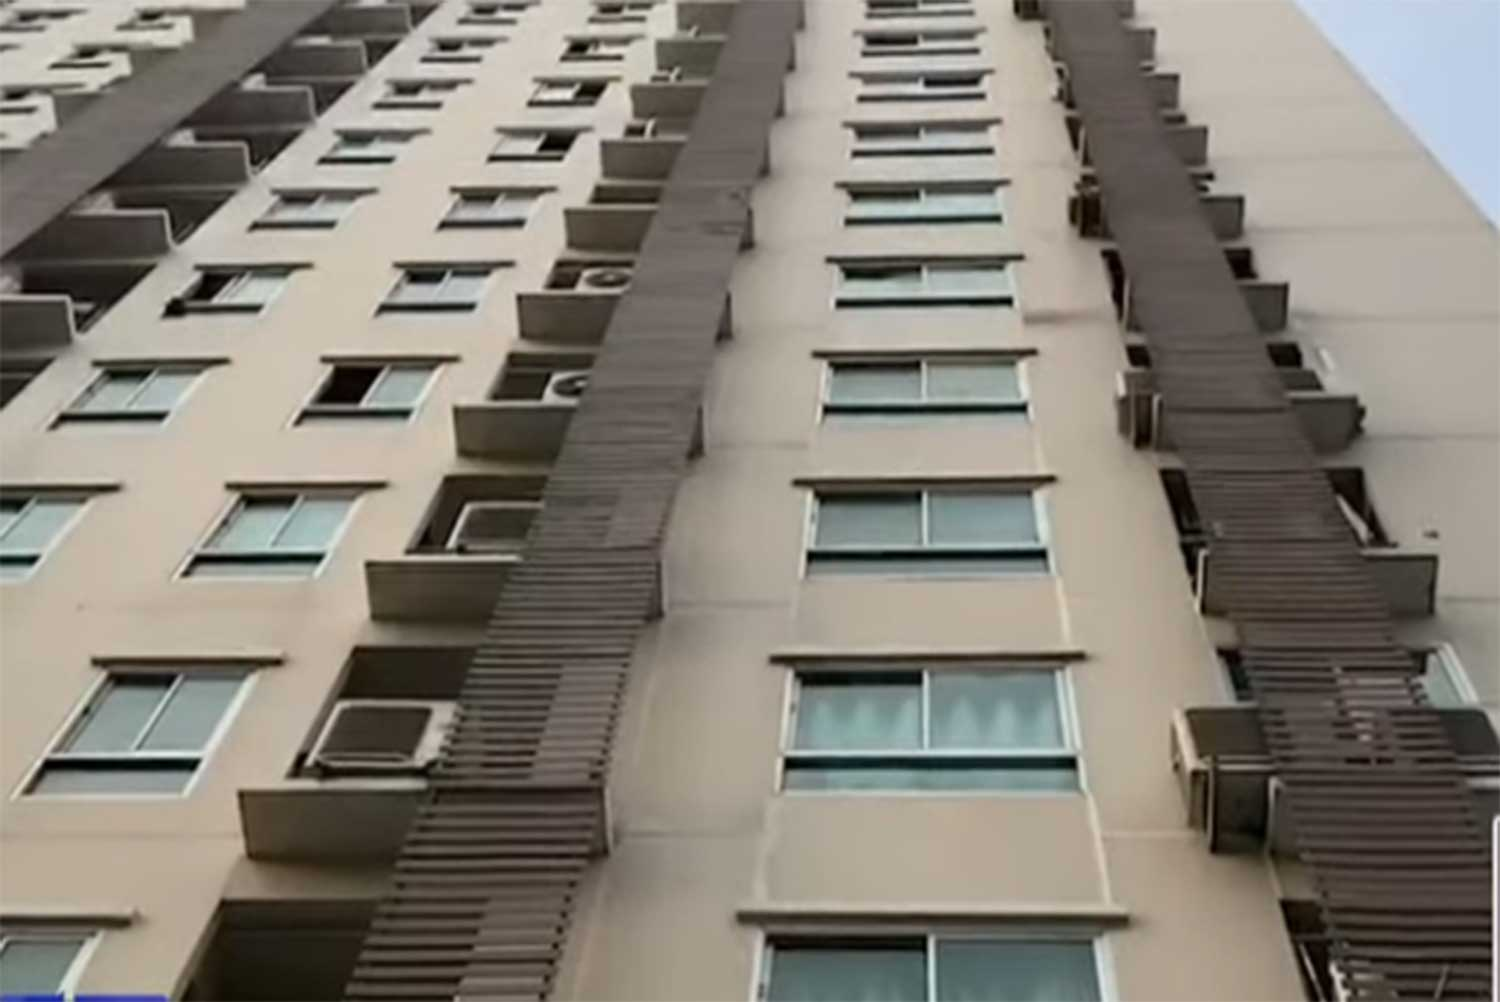 A woman, 77, died in a fall from this 15-storey condominium building in Bangkok's Bang Khen district on Thursday morning. (Capture from MCOT TV)